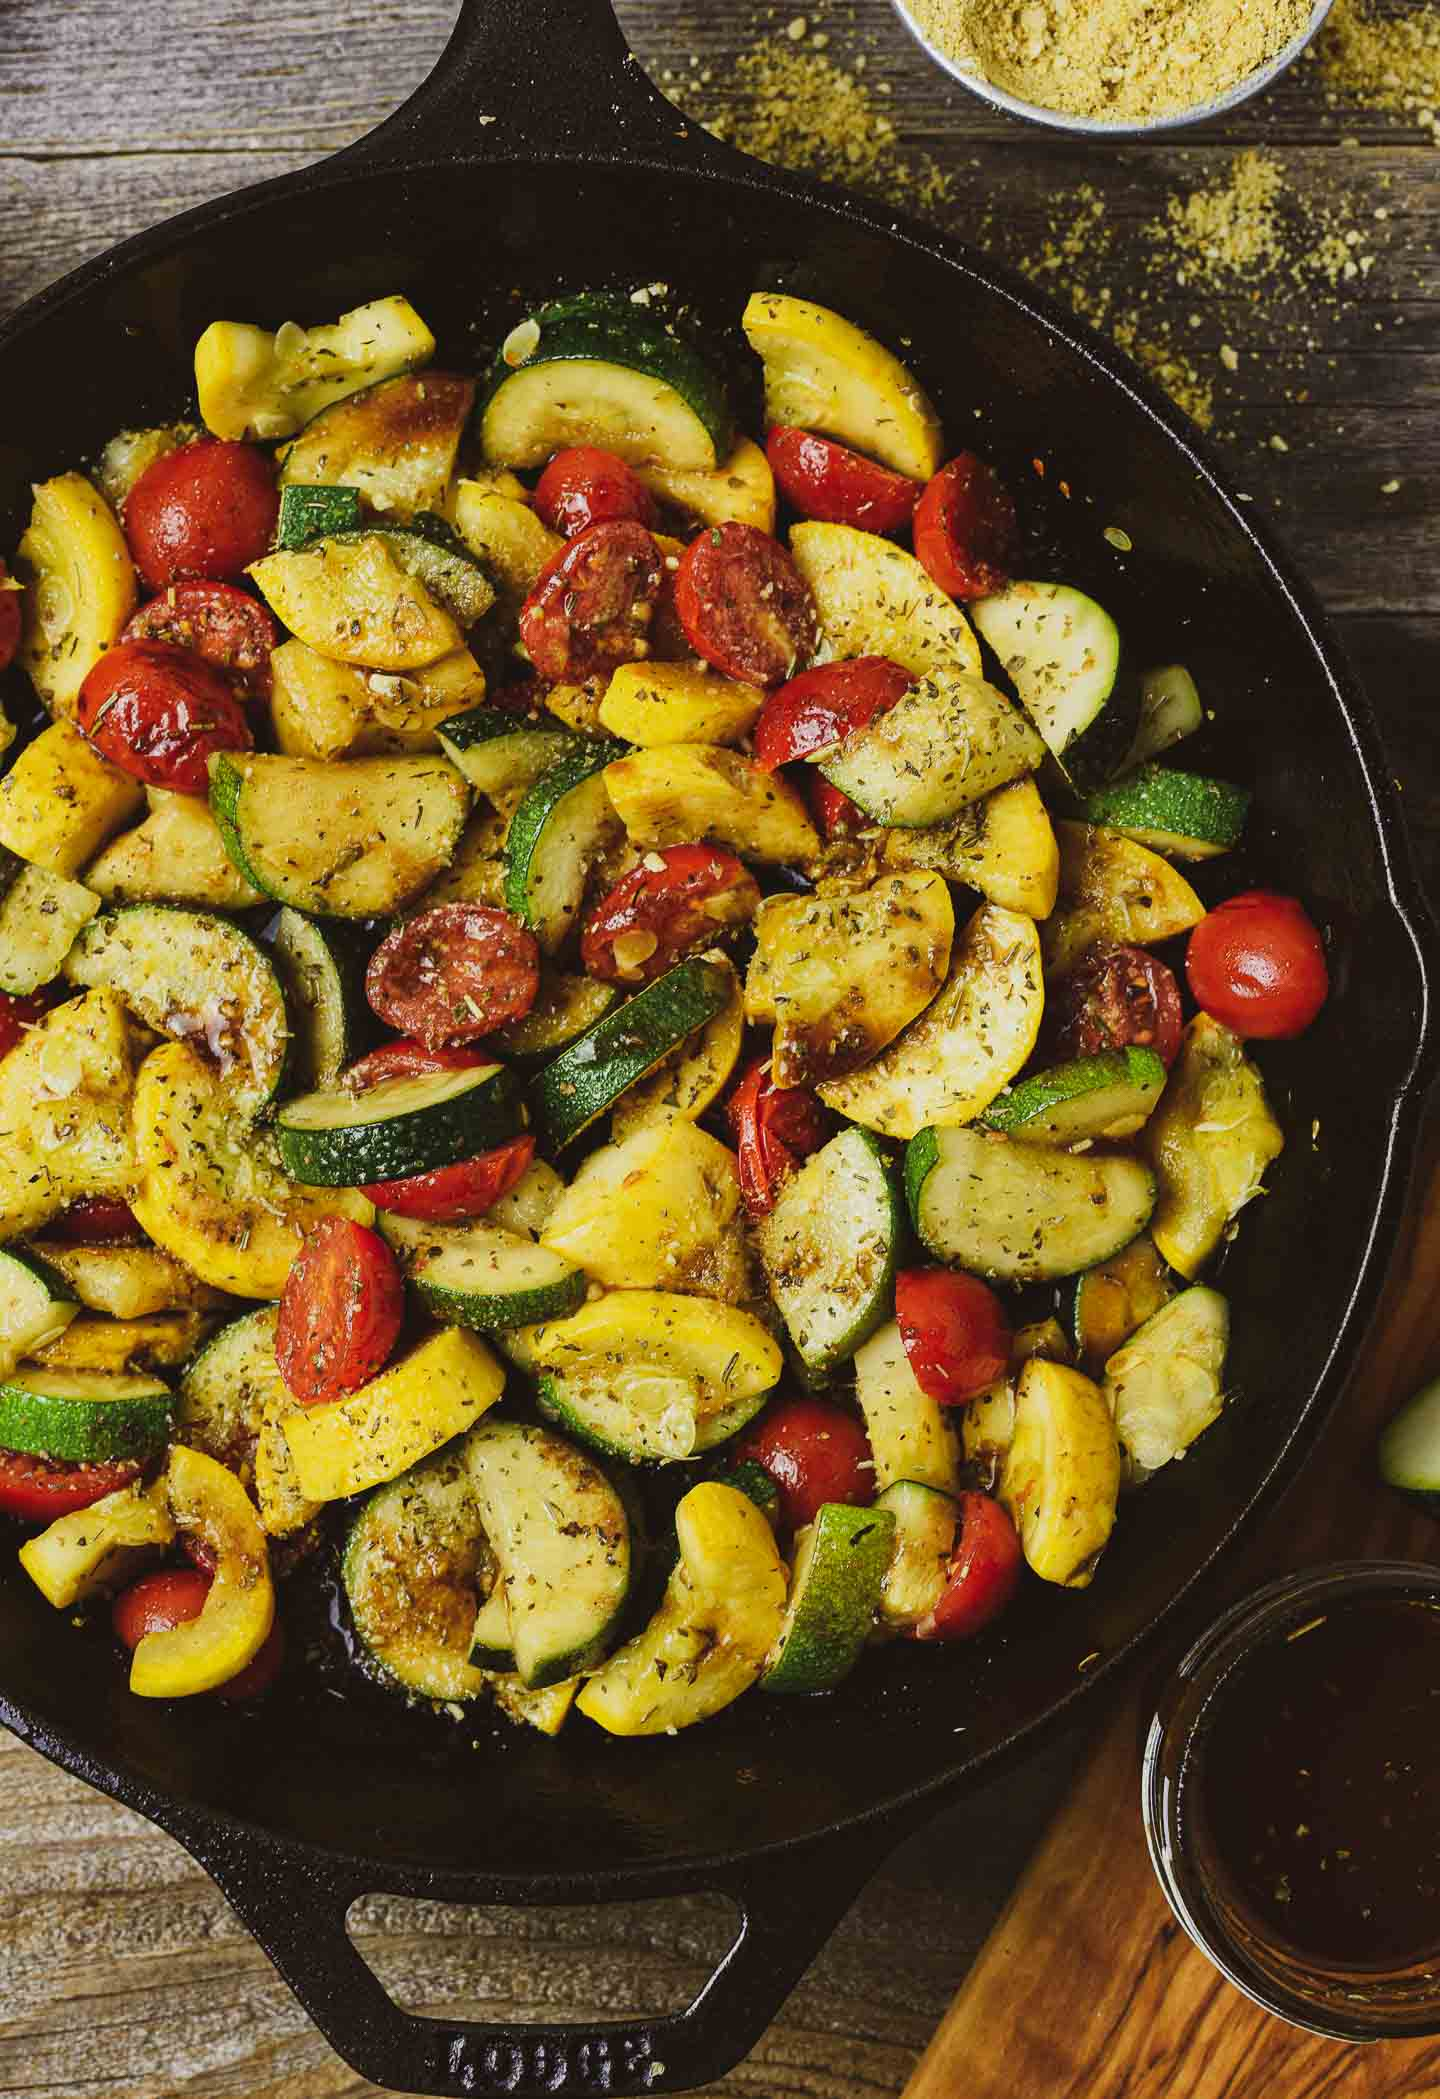 This Vegan Summer Squash Sauté is healthy, delicious, and so easy to make. It's made with yellow squash, zucchini, cherry Tomatoes, and vegan parmesan in one skillet. And, it's completely oil-free.